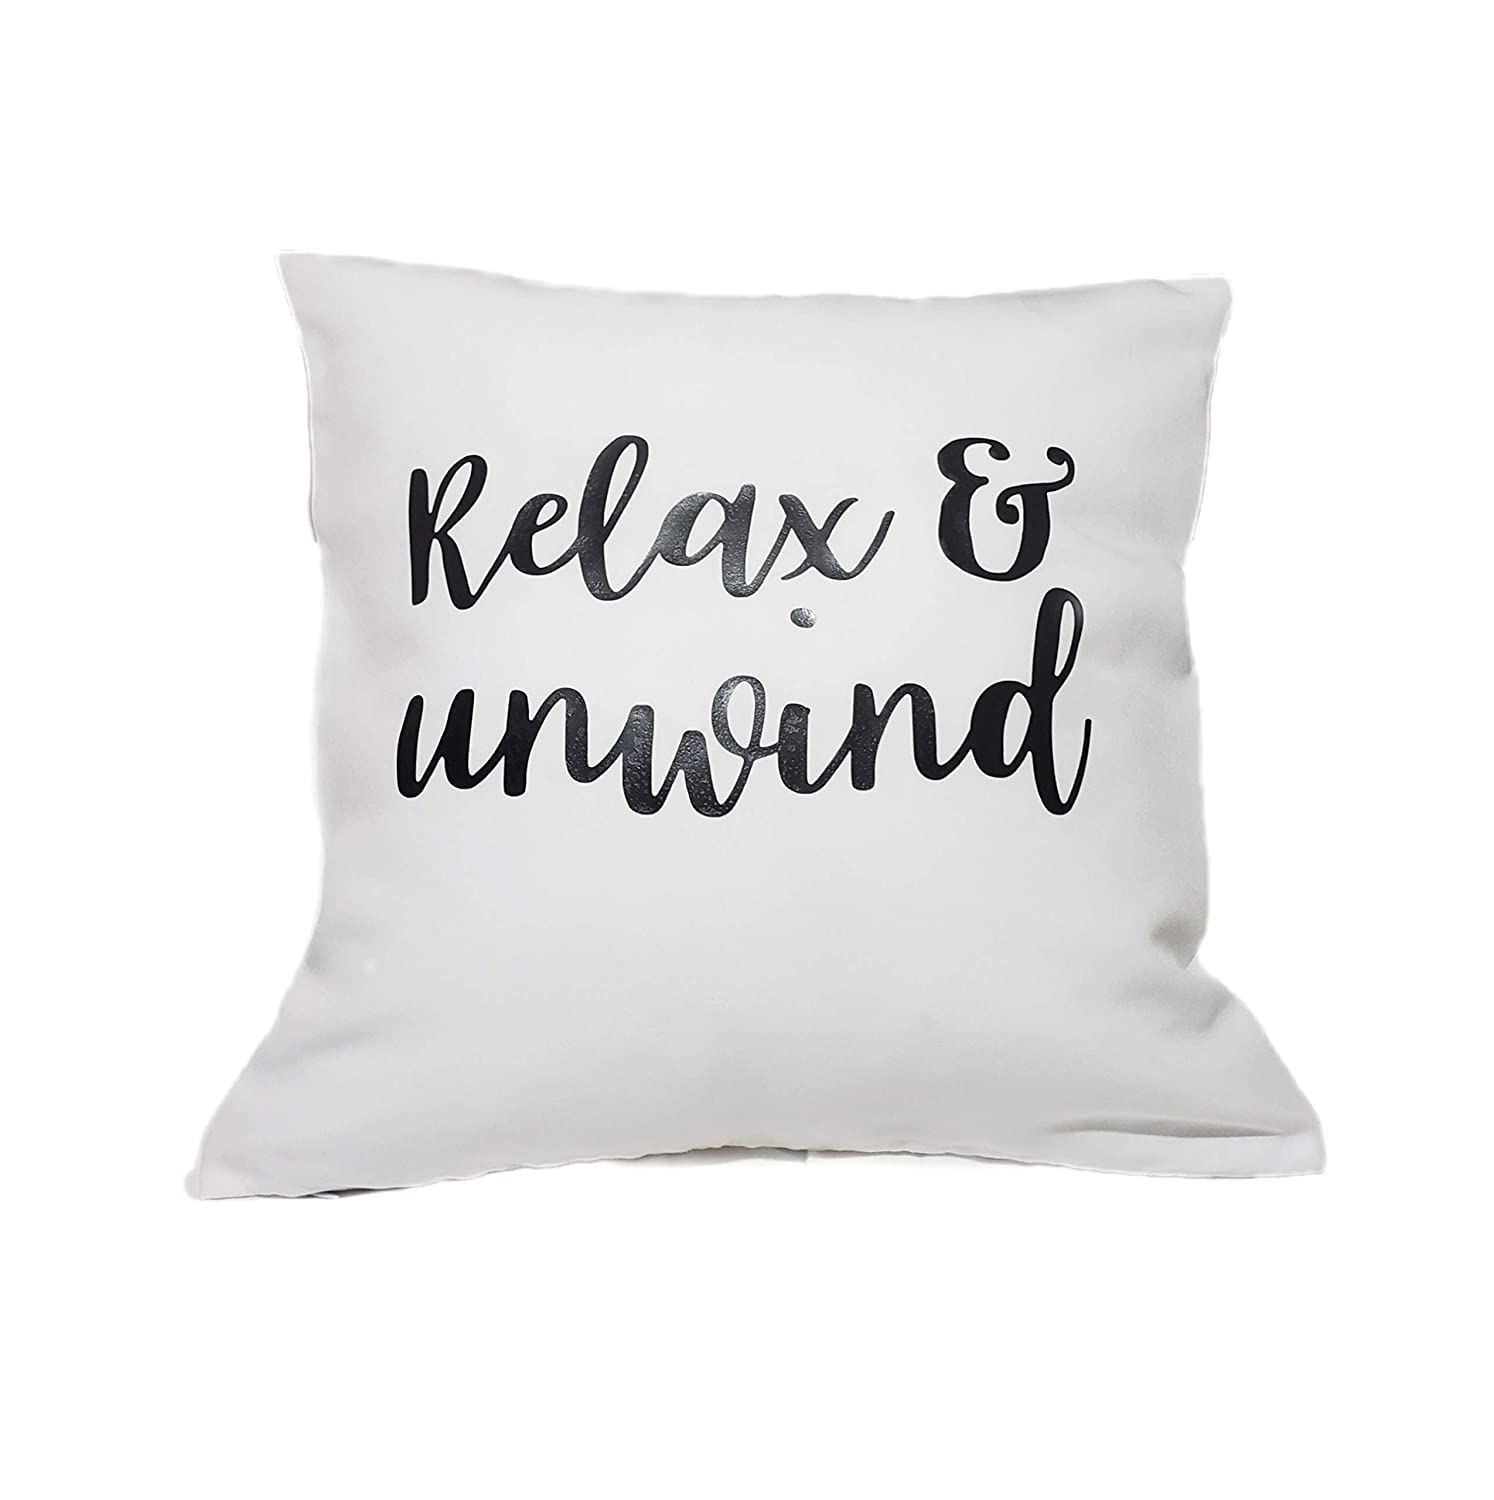 Custom Pillow Picture Custom Pillow Custom Pillow Quote Pillow Cover 16x16